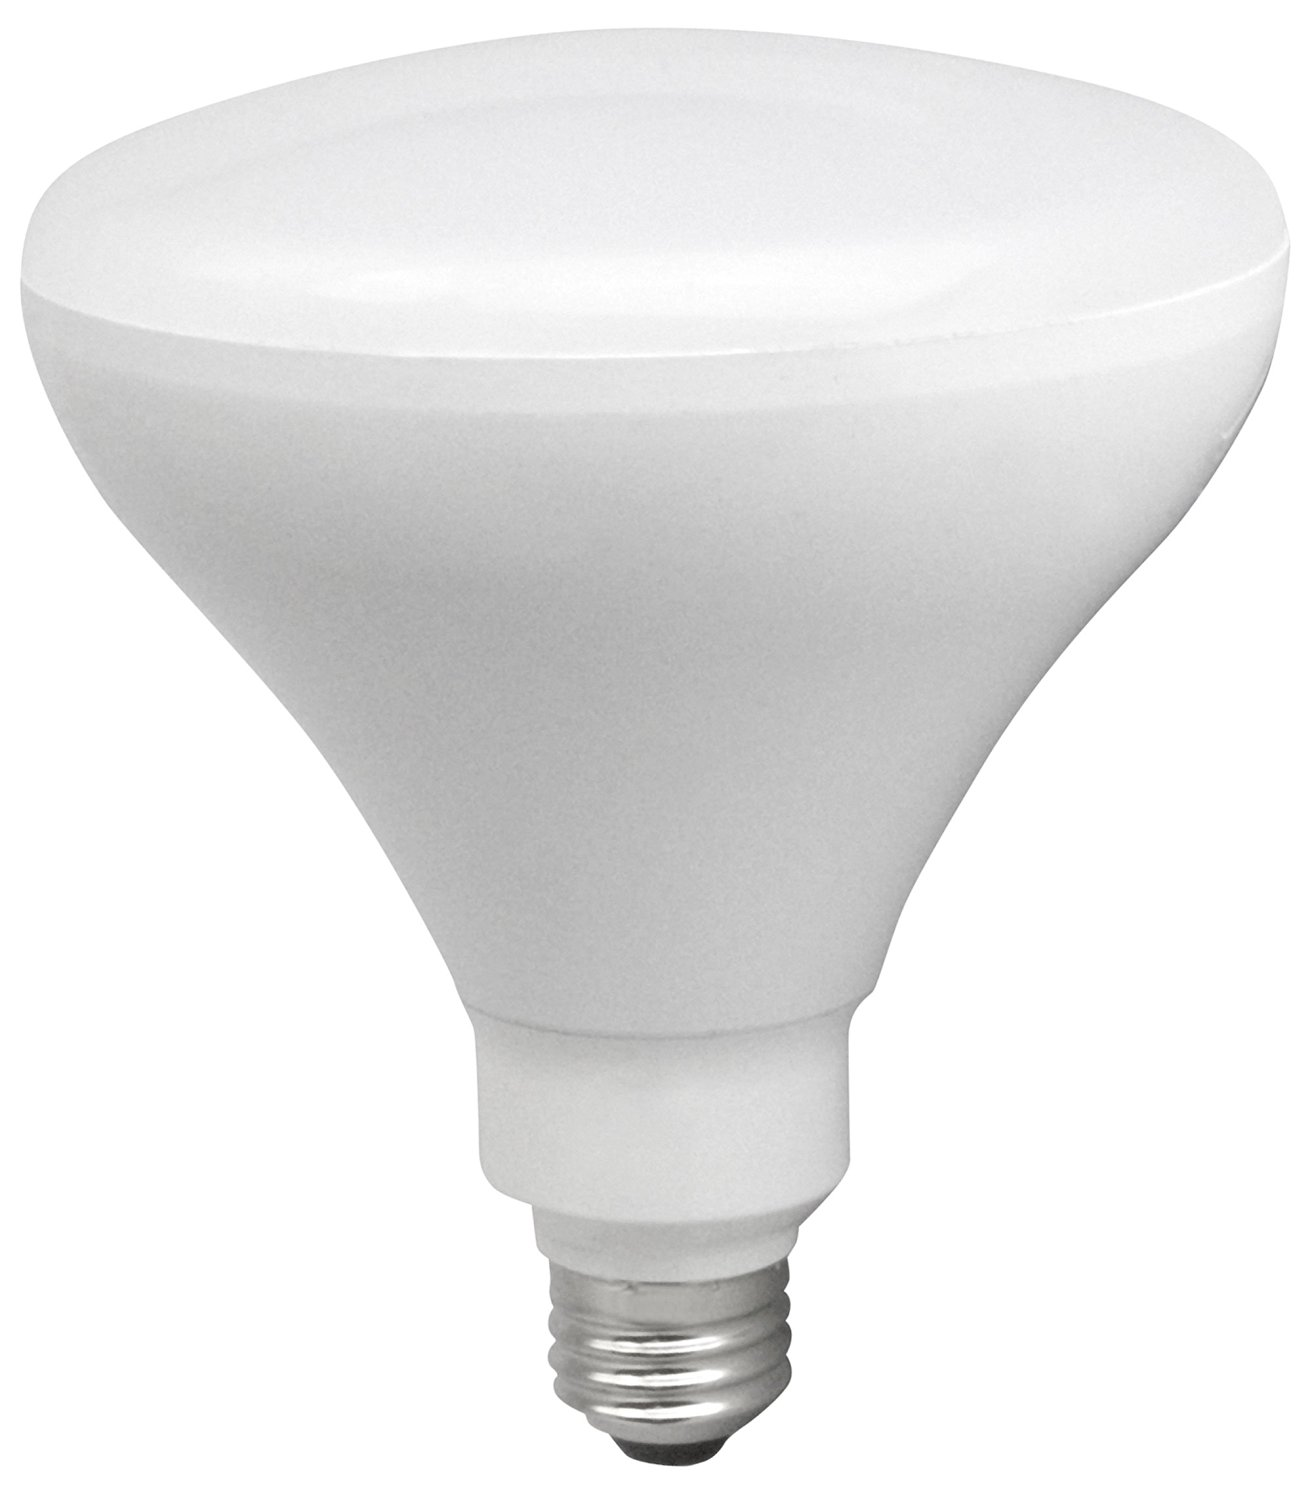 TCP 85 Watt Equivalent 1-pack, BR40 LED Reflector Light Bulbs, ENERGY STAR Certified, Dimmable, Soft White RLBR4014W27KD